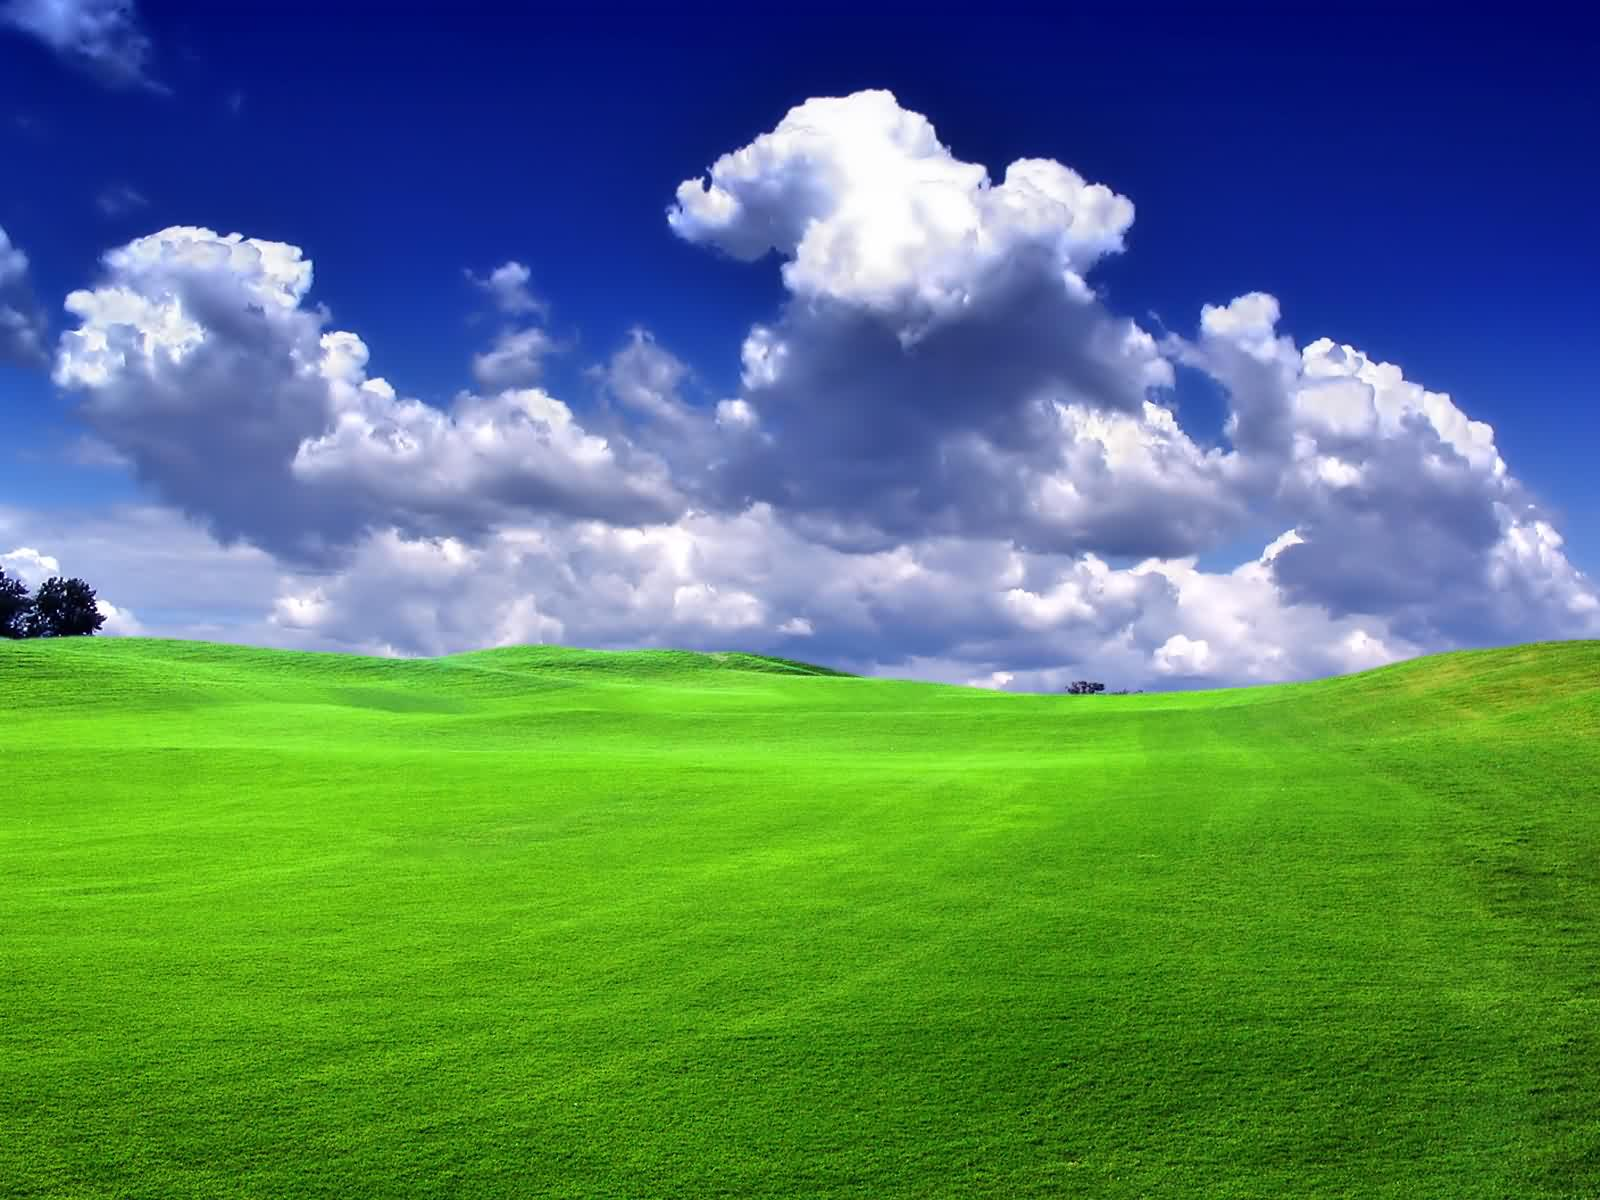 nature wallpaperhigh definition - photo #12